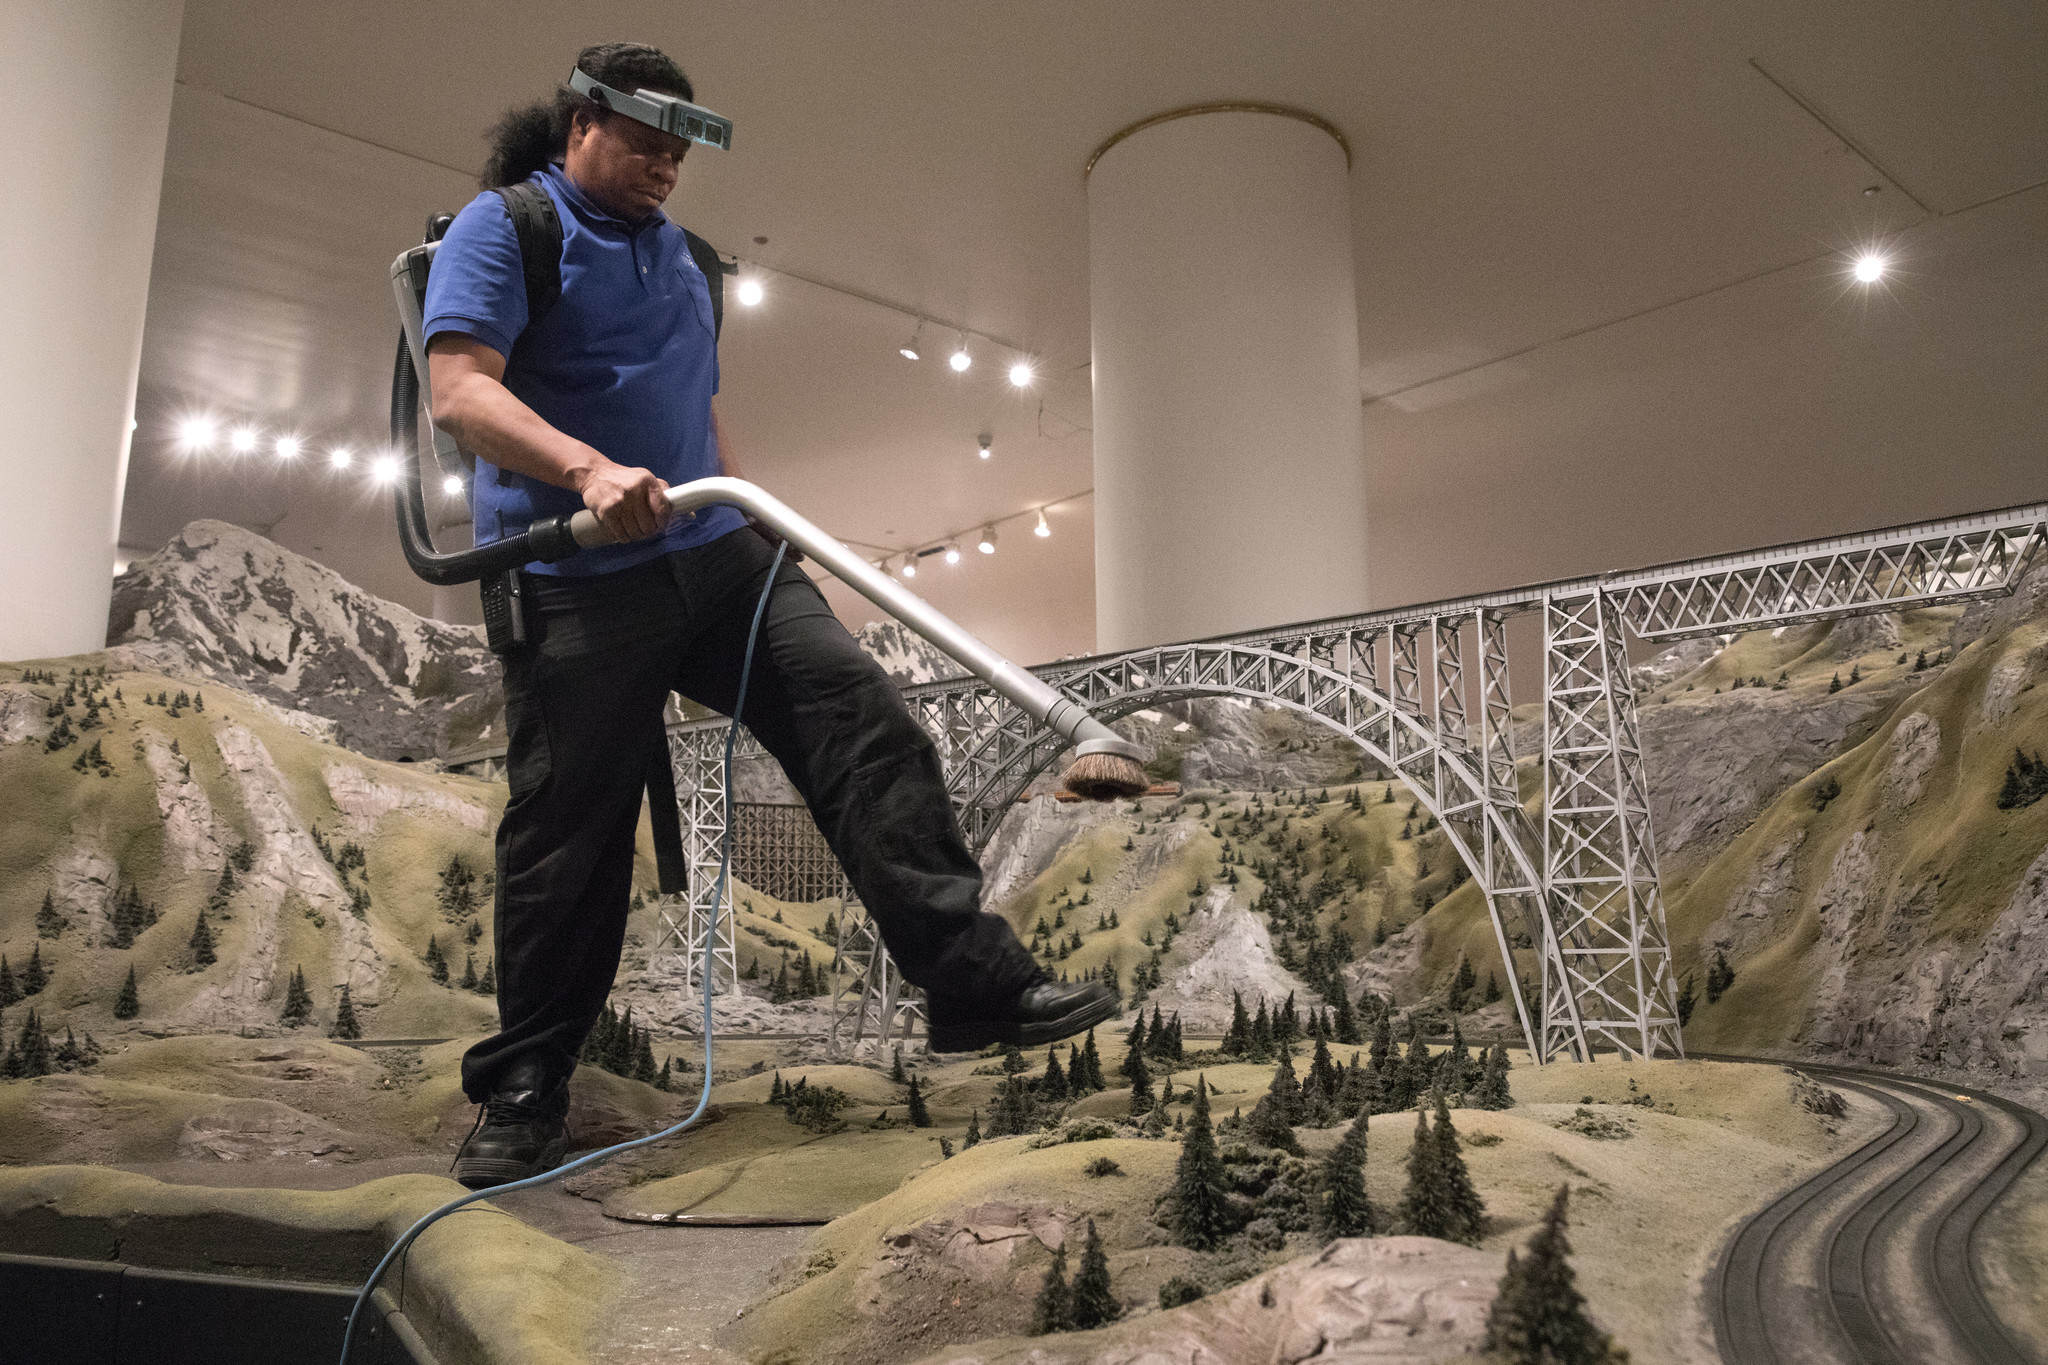 Meet The Man Who Keeps The Train Set On Track At The